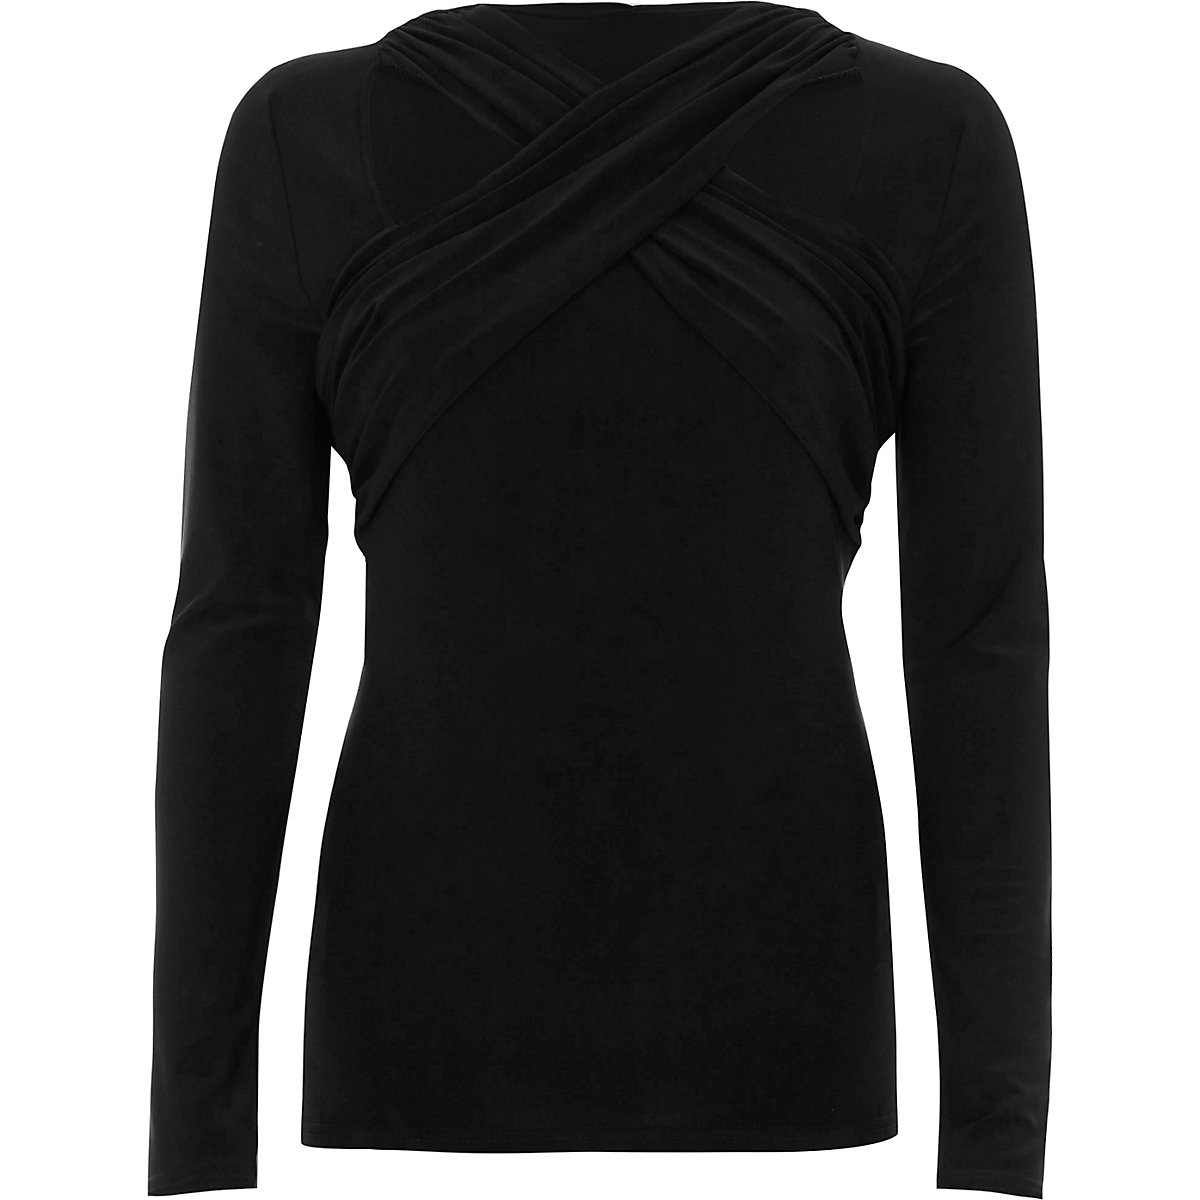 Black cross twist neck fitted long sleeve top